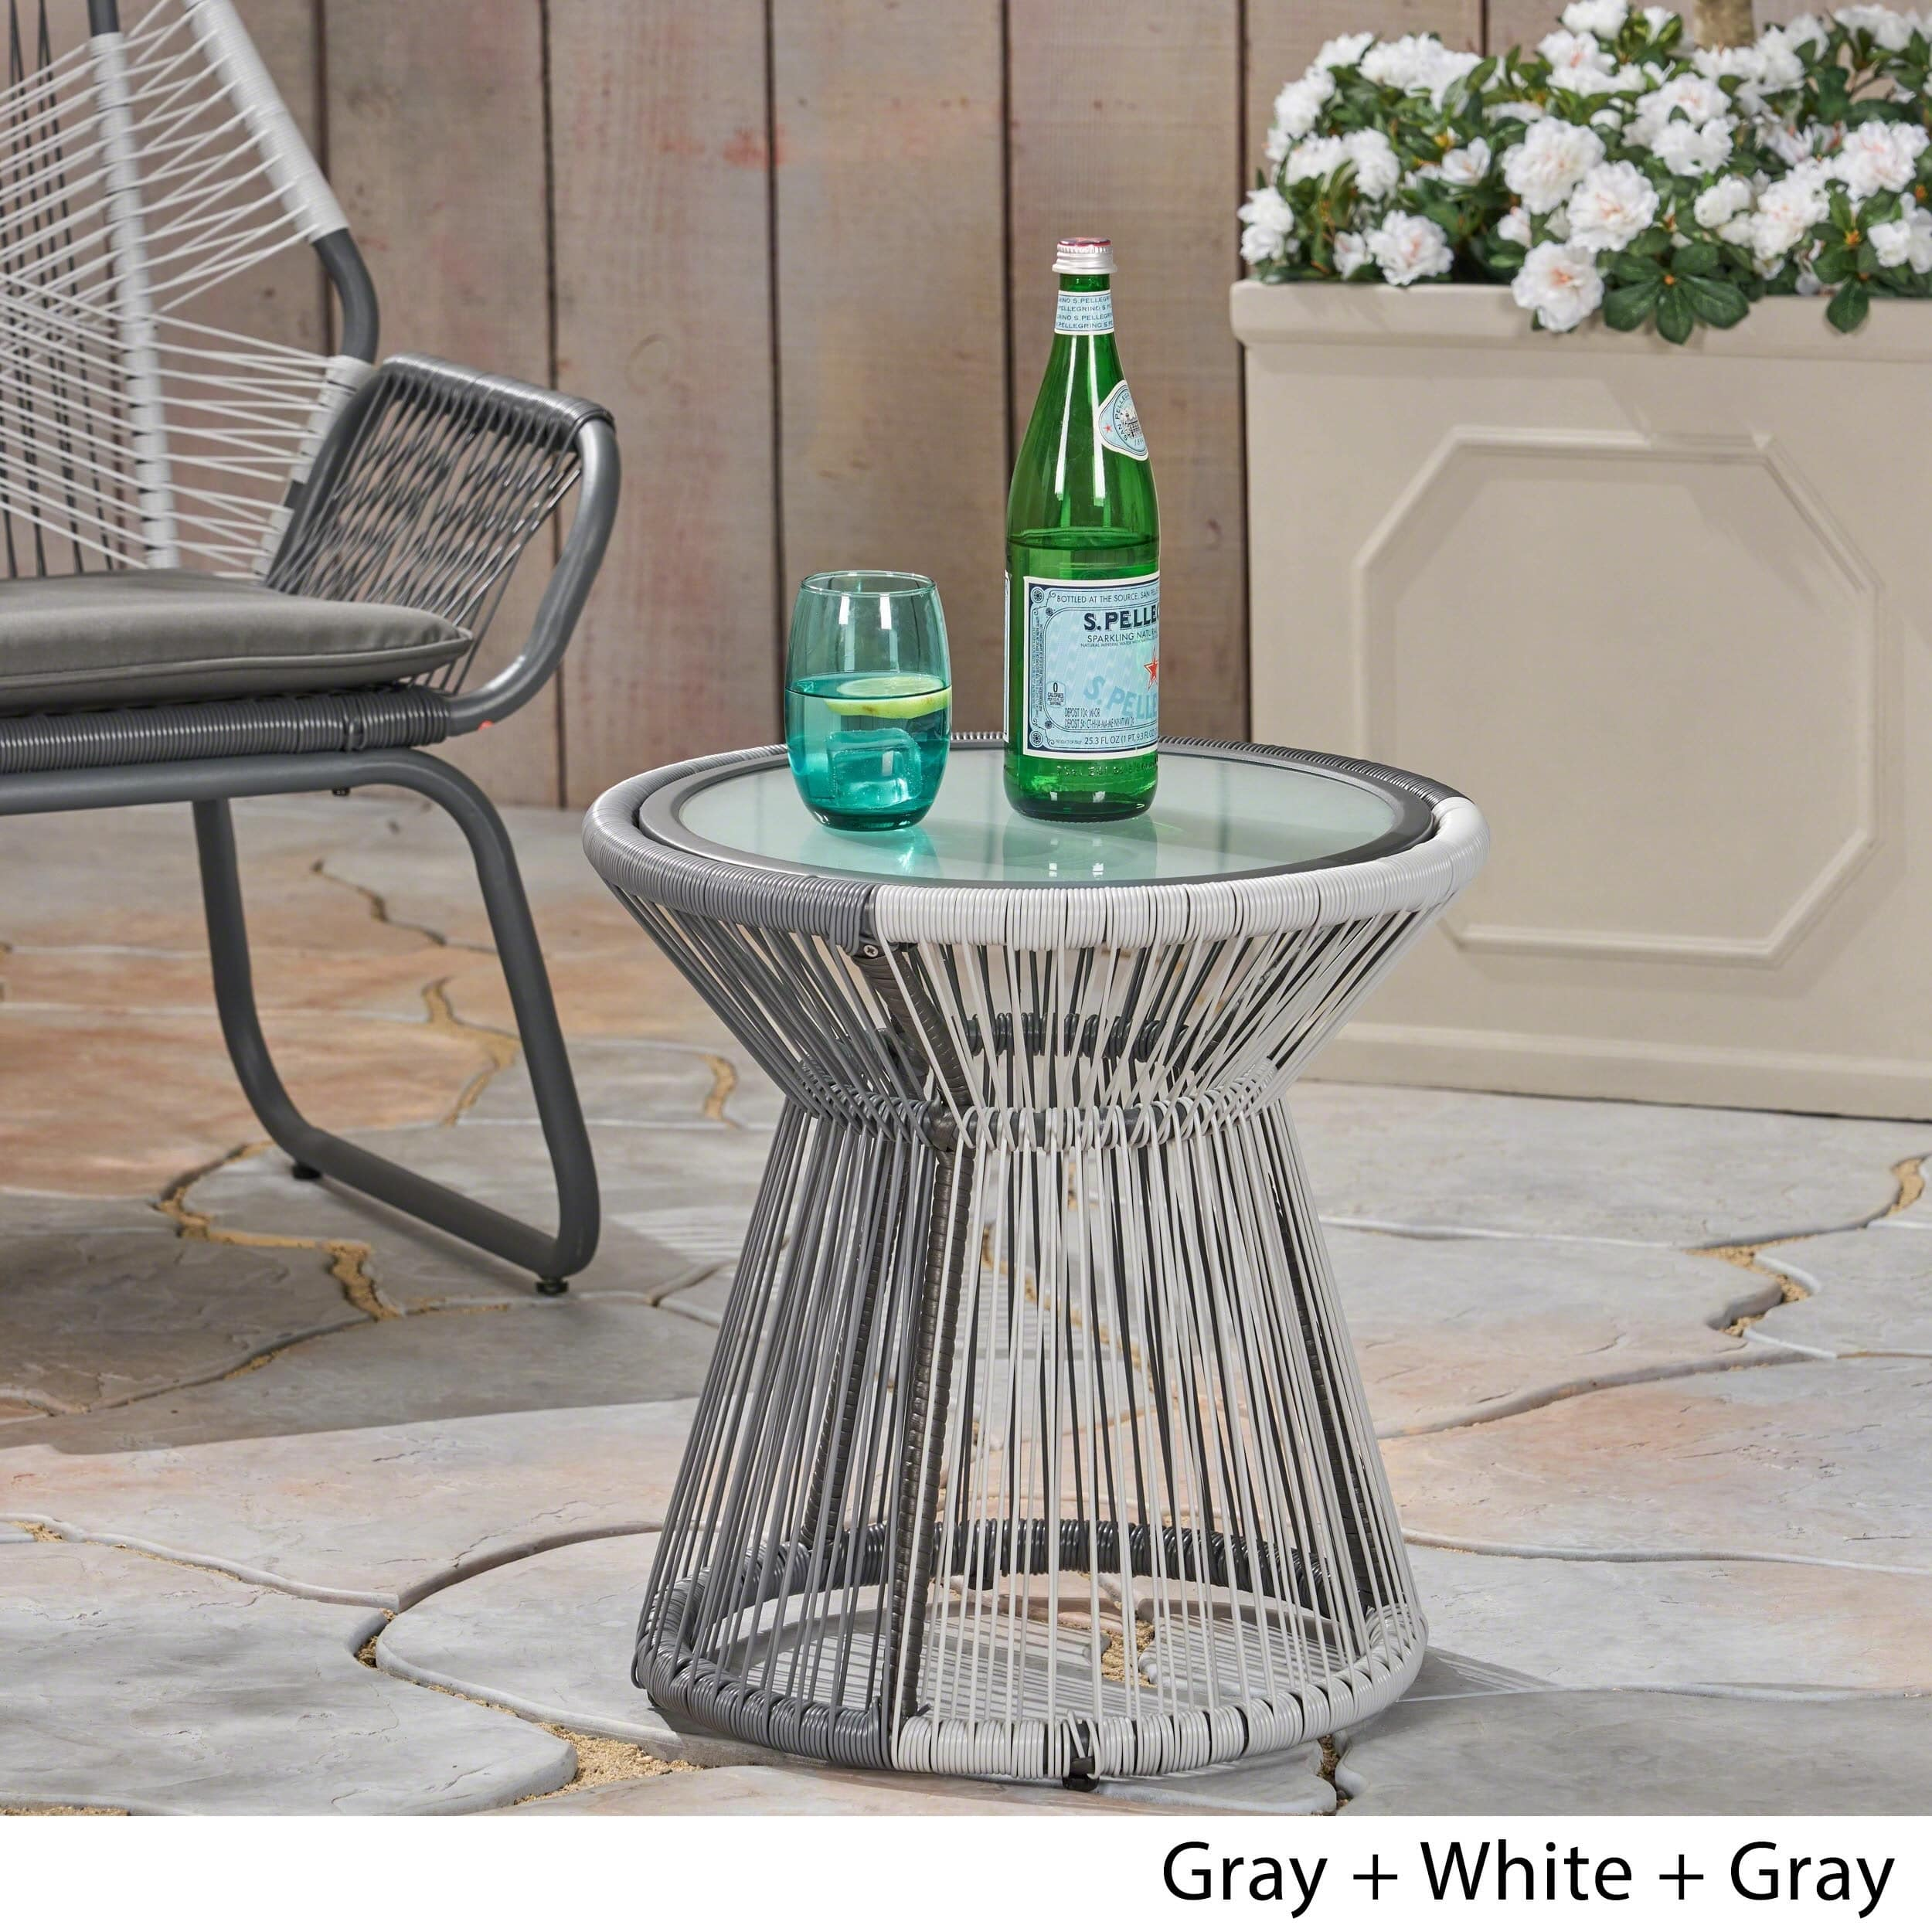 milan outdoor side table with glass top christopher knight home free shipping today nice design tea currey and company small wood nightstand coffee tables sofa patio chairs